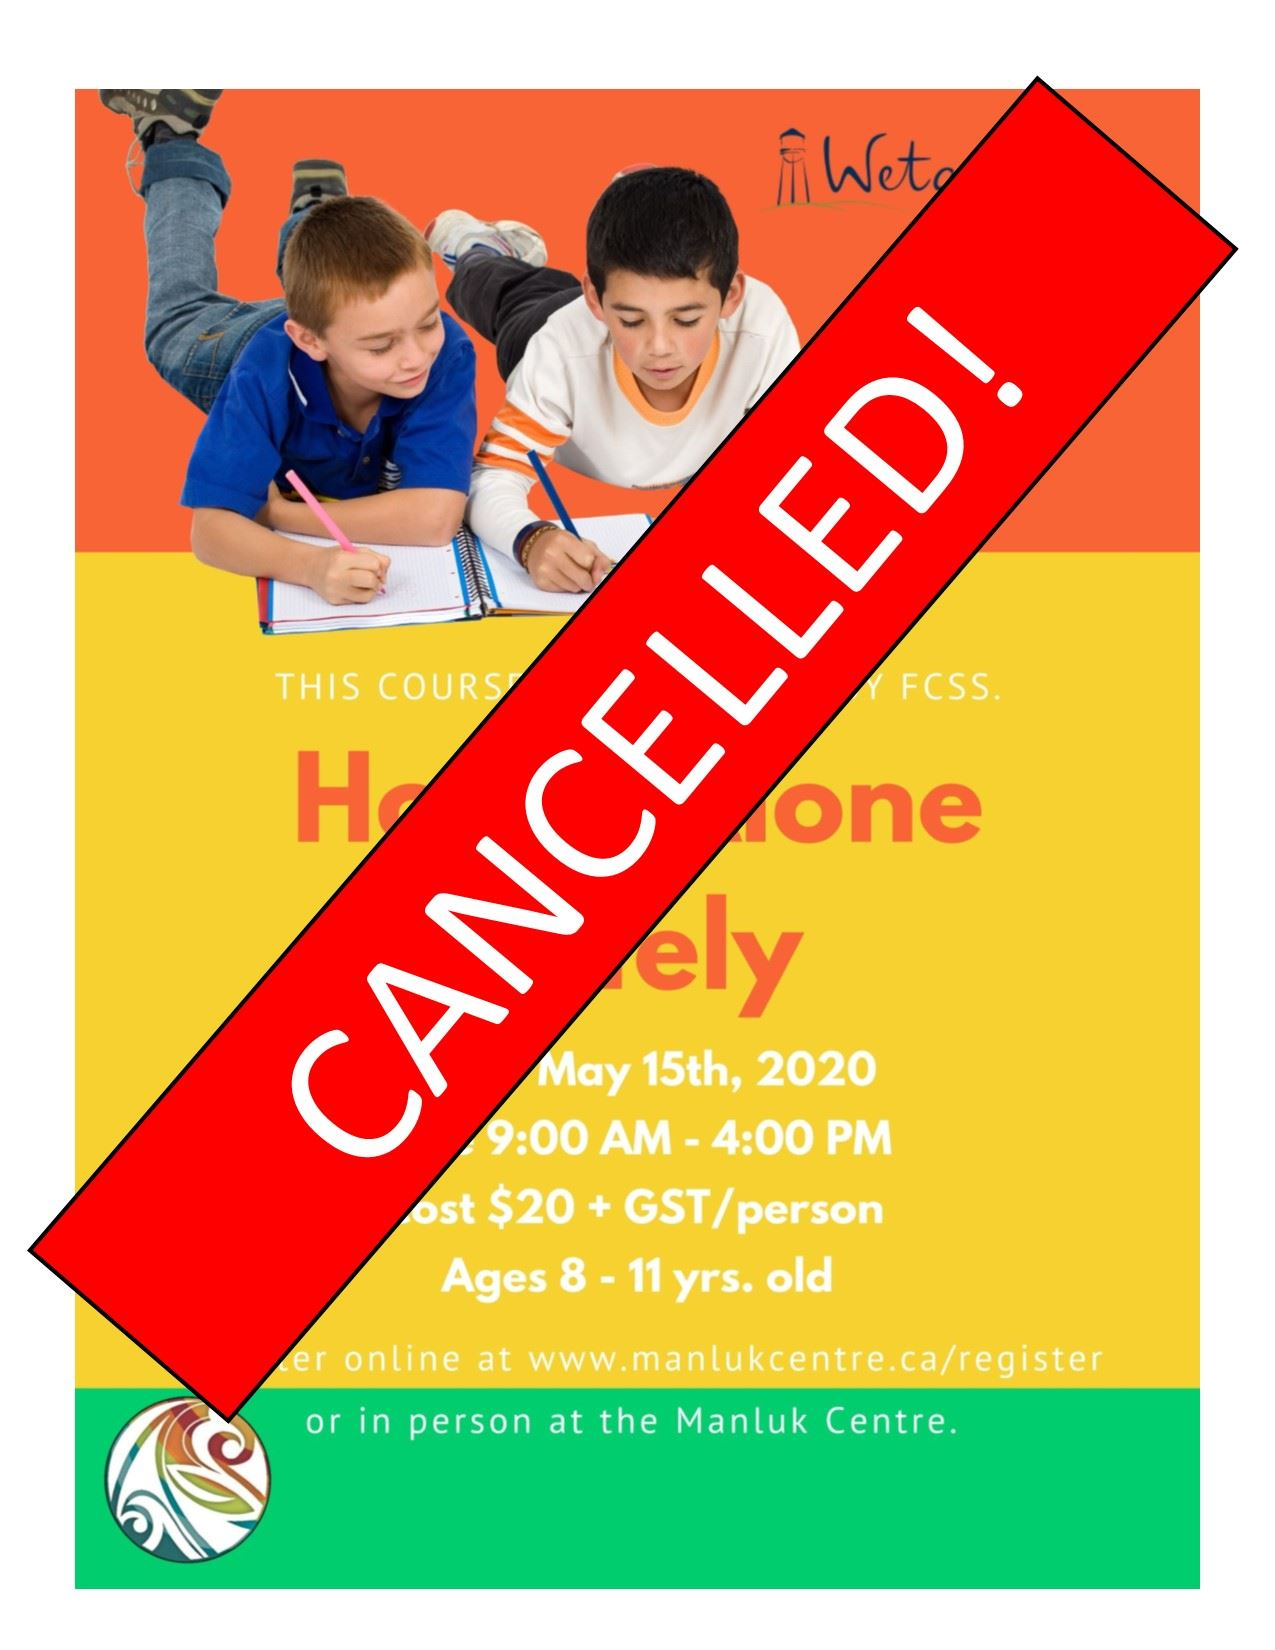 CANCELLED Spring Home Alone course - May 15th